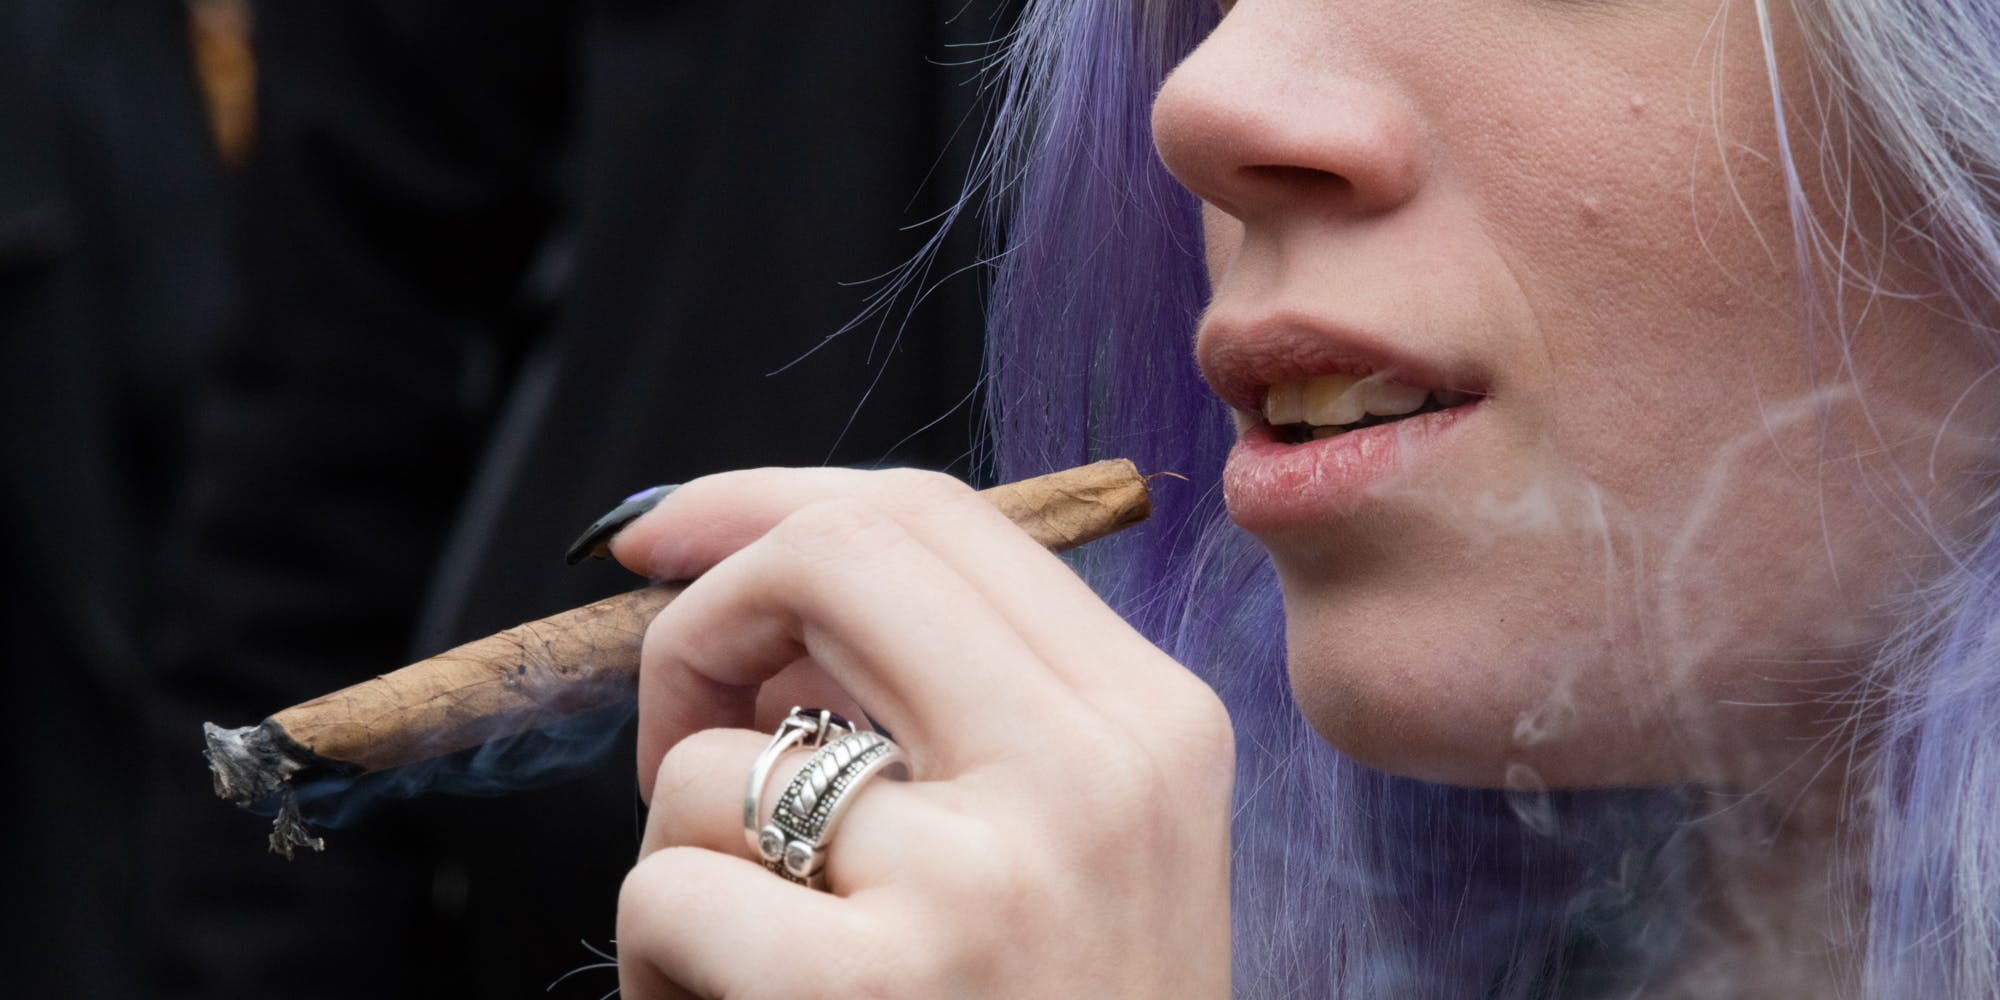 woman smokes cannabis during the annual NYC Cannabis Parade. Turns out women smoke more than men